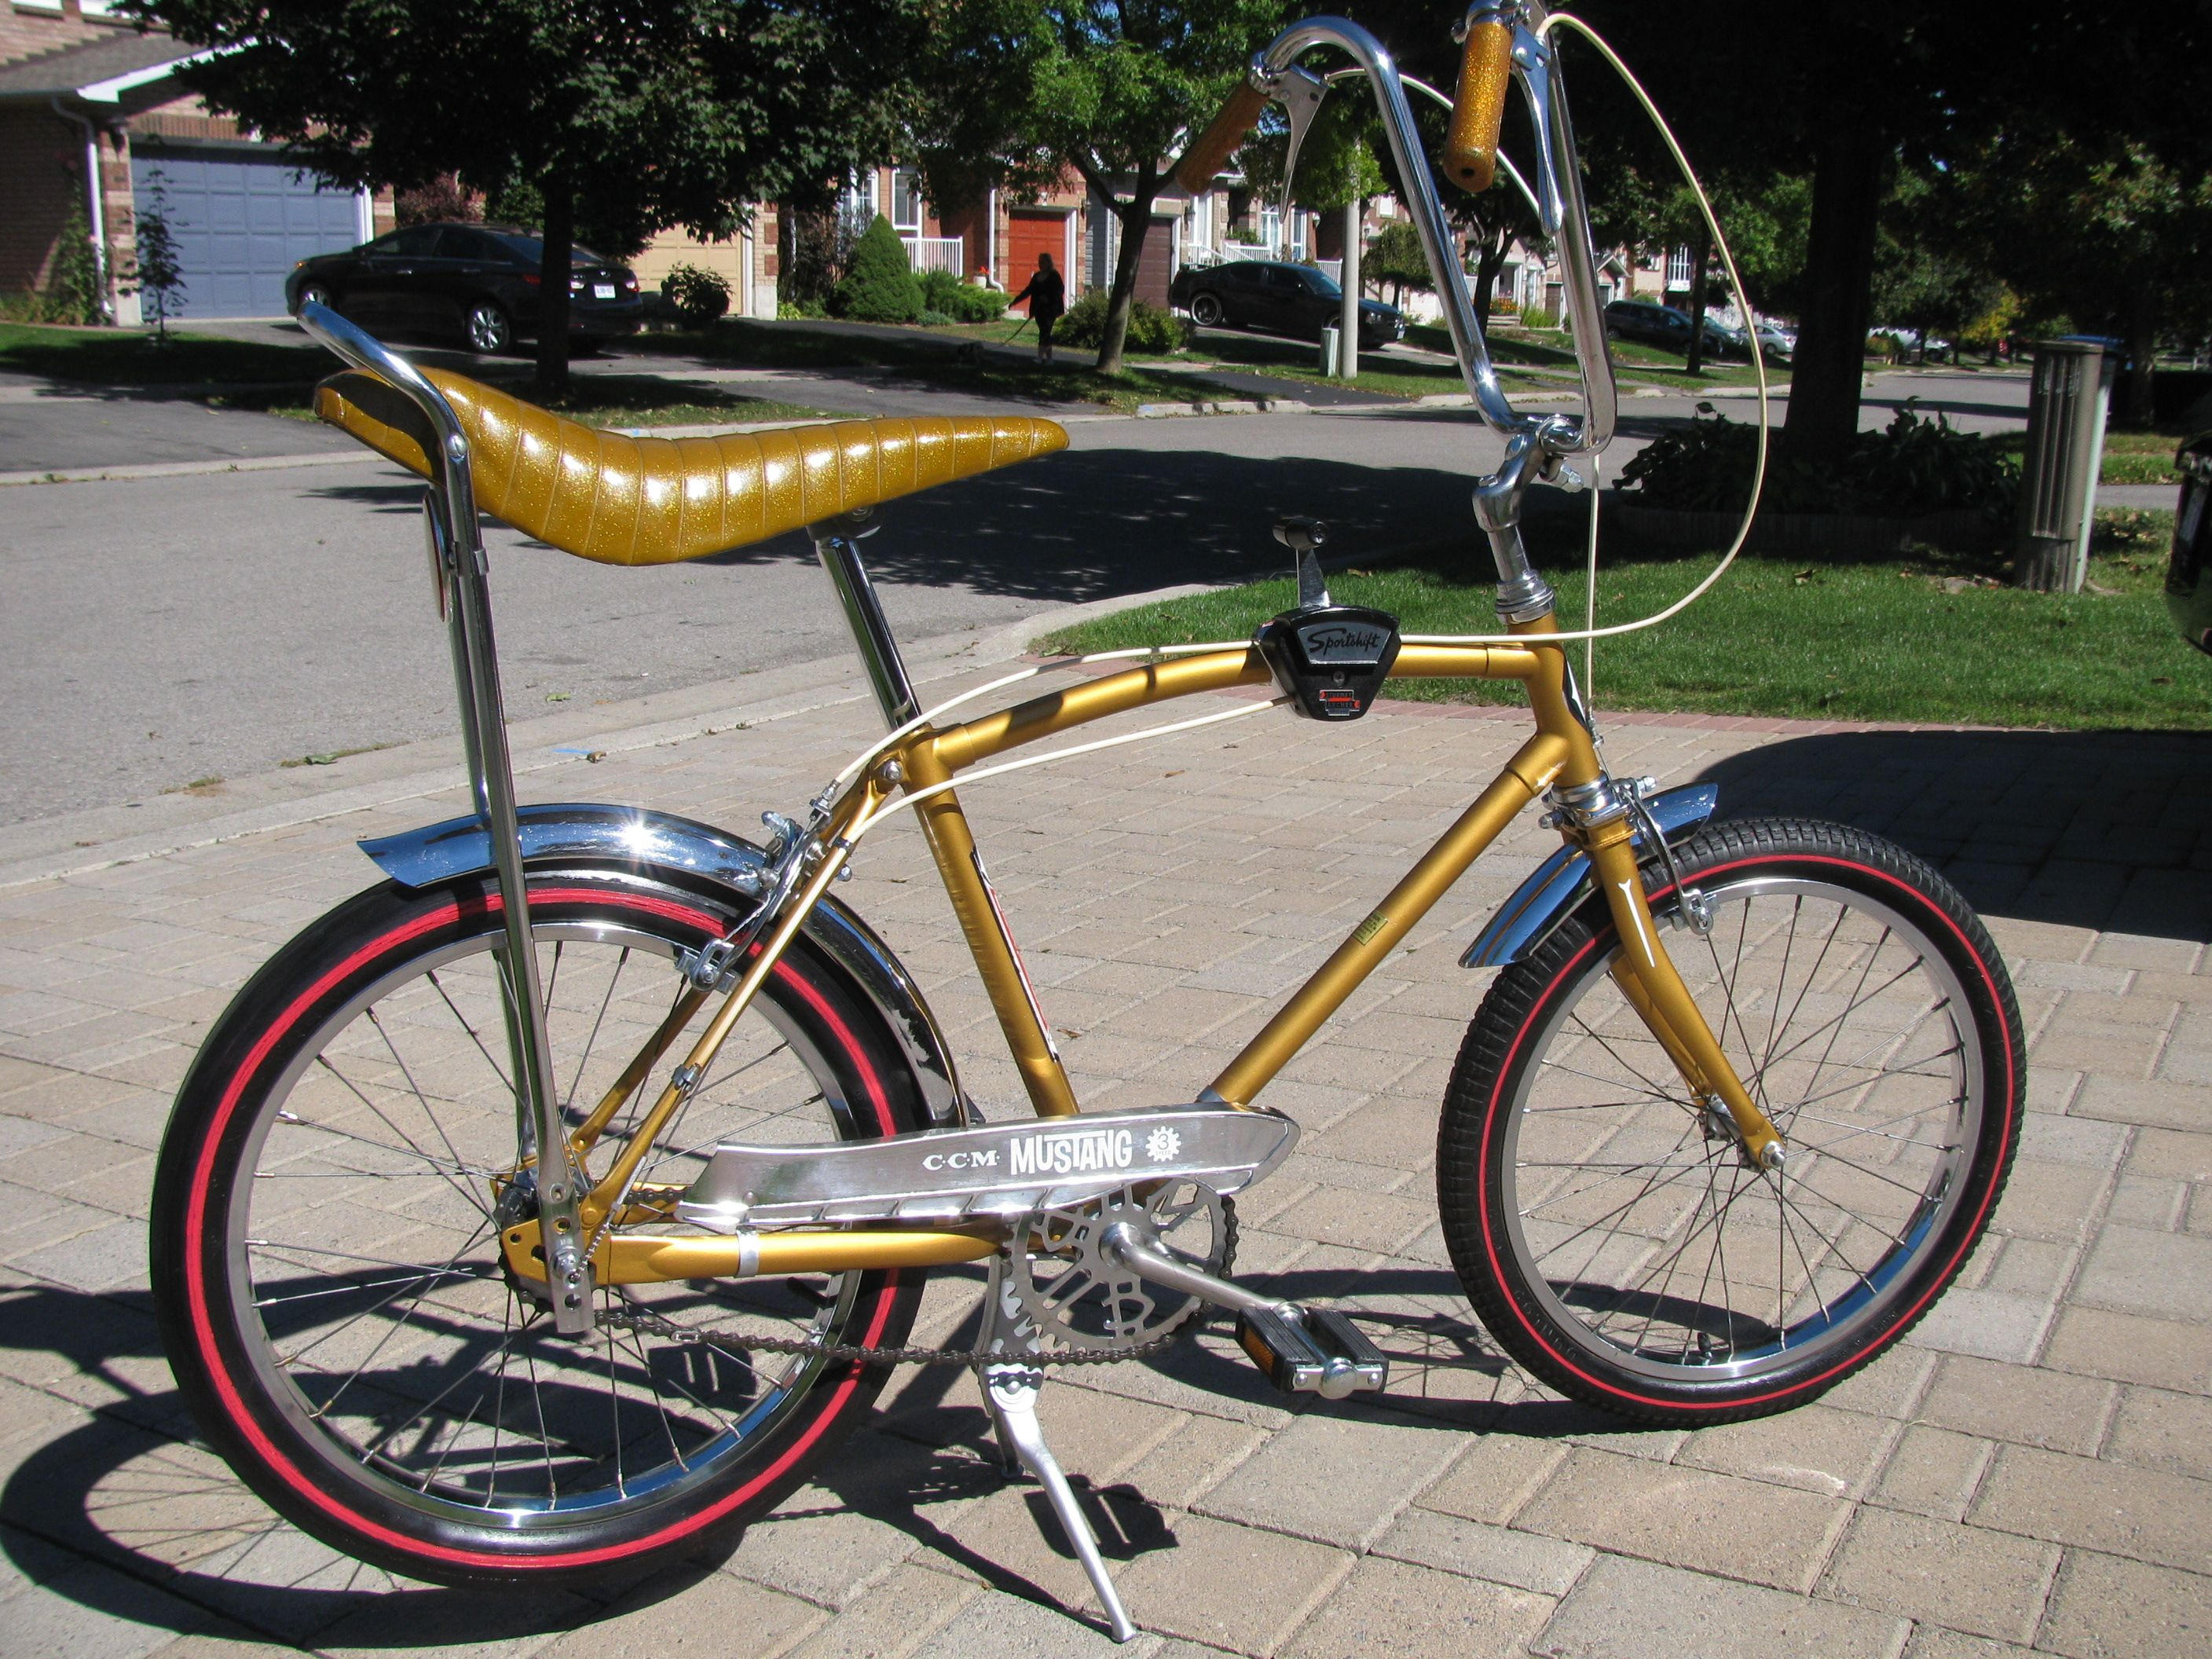 This Looks Just Like My Ccm Mustang Bicycle I Owned In The Late